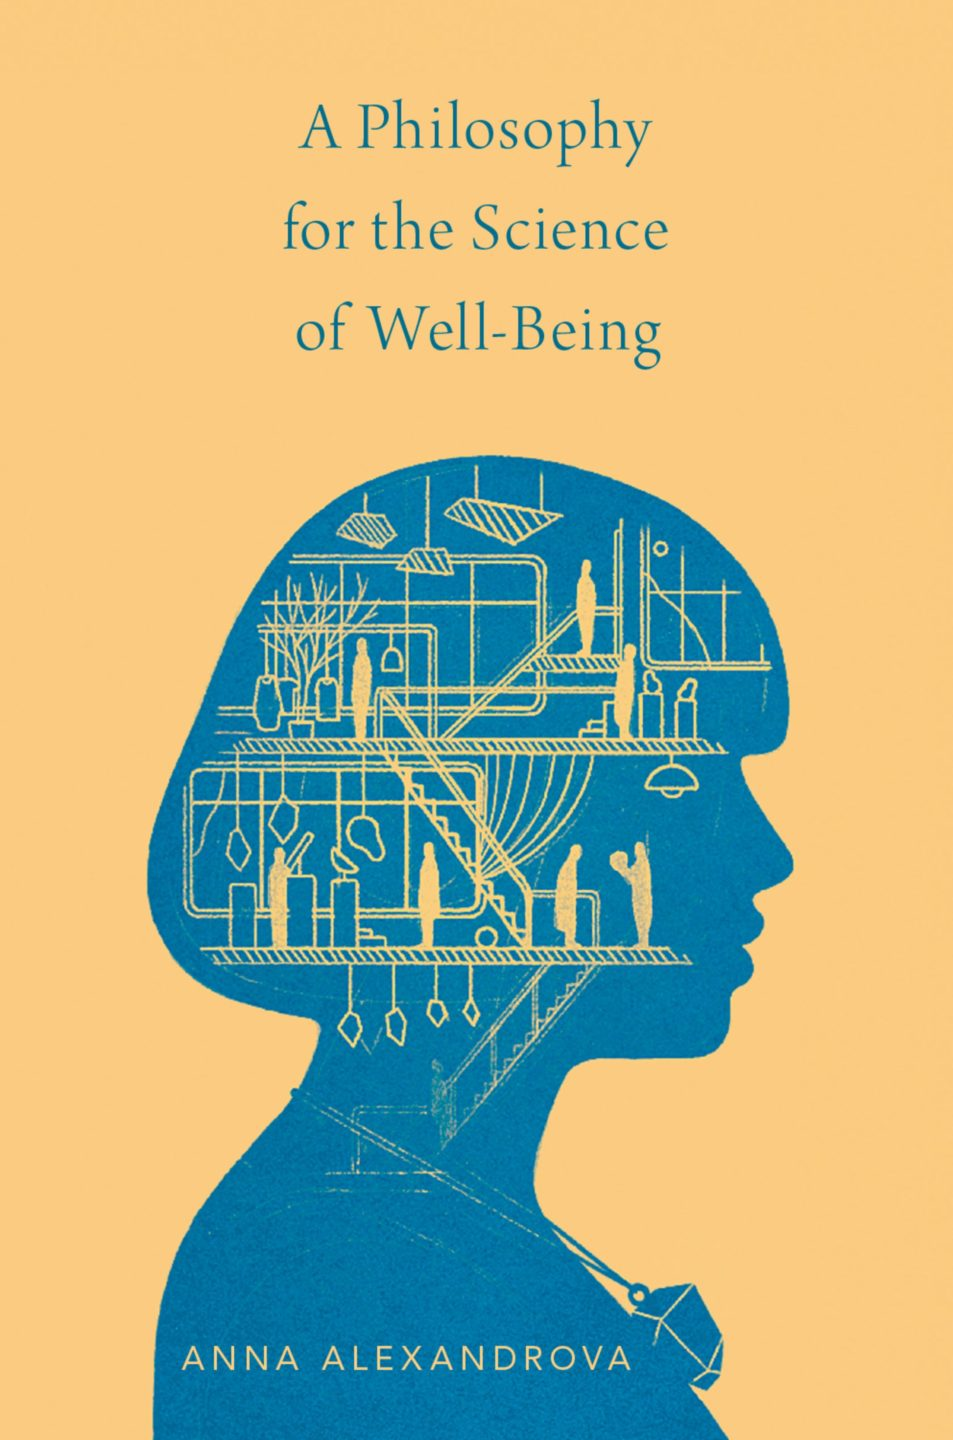 Is there a single concept of well-being?